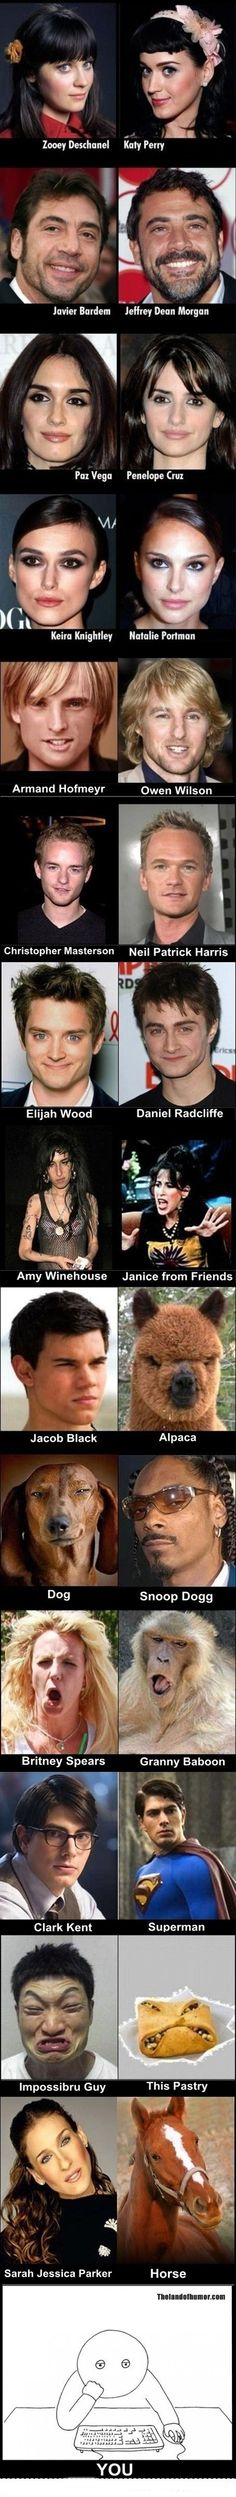 Celebrity look-a-likes. Super funny!